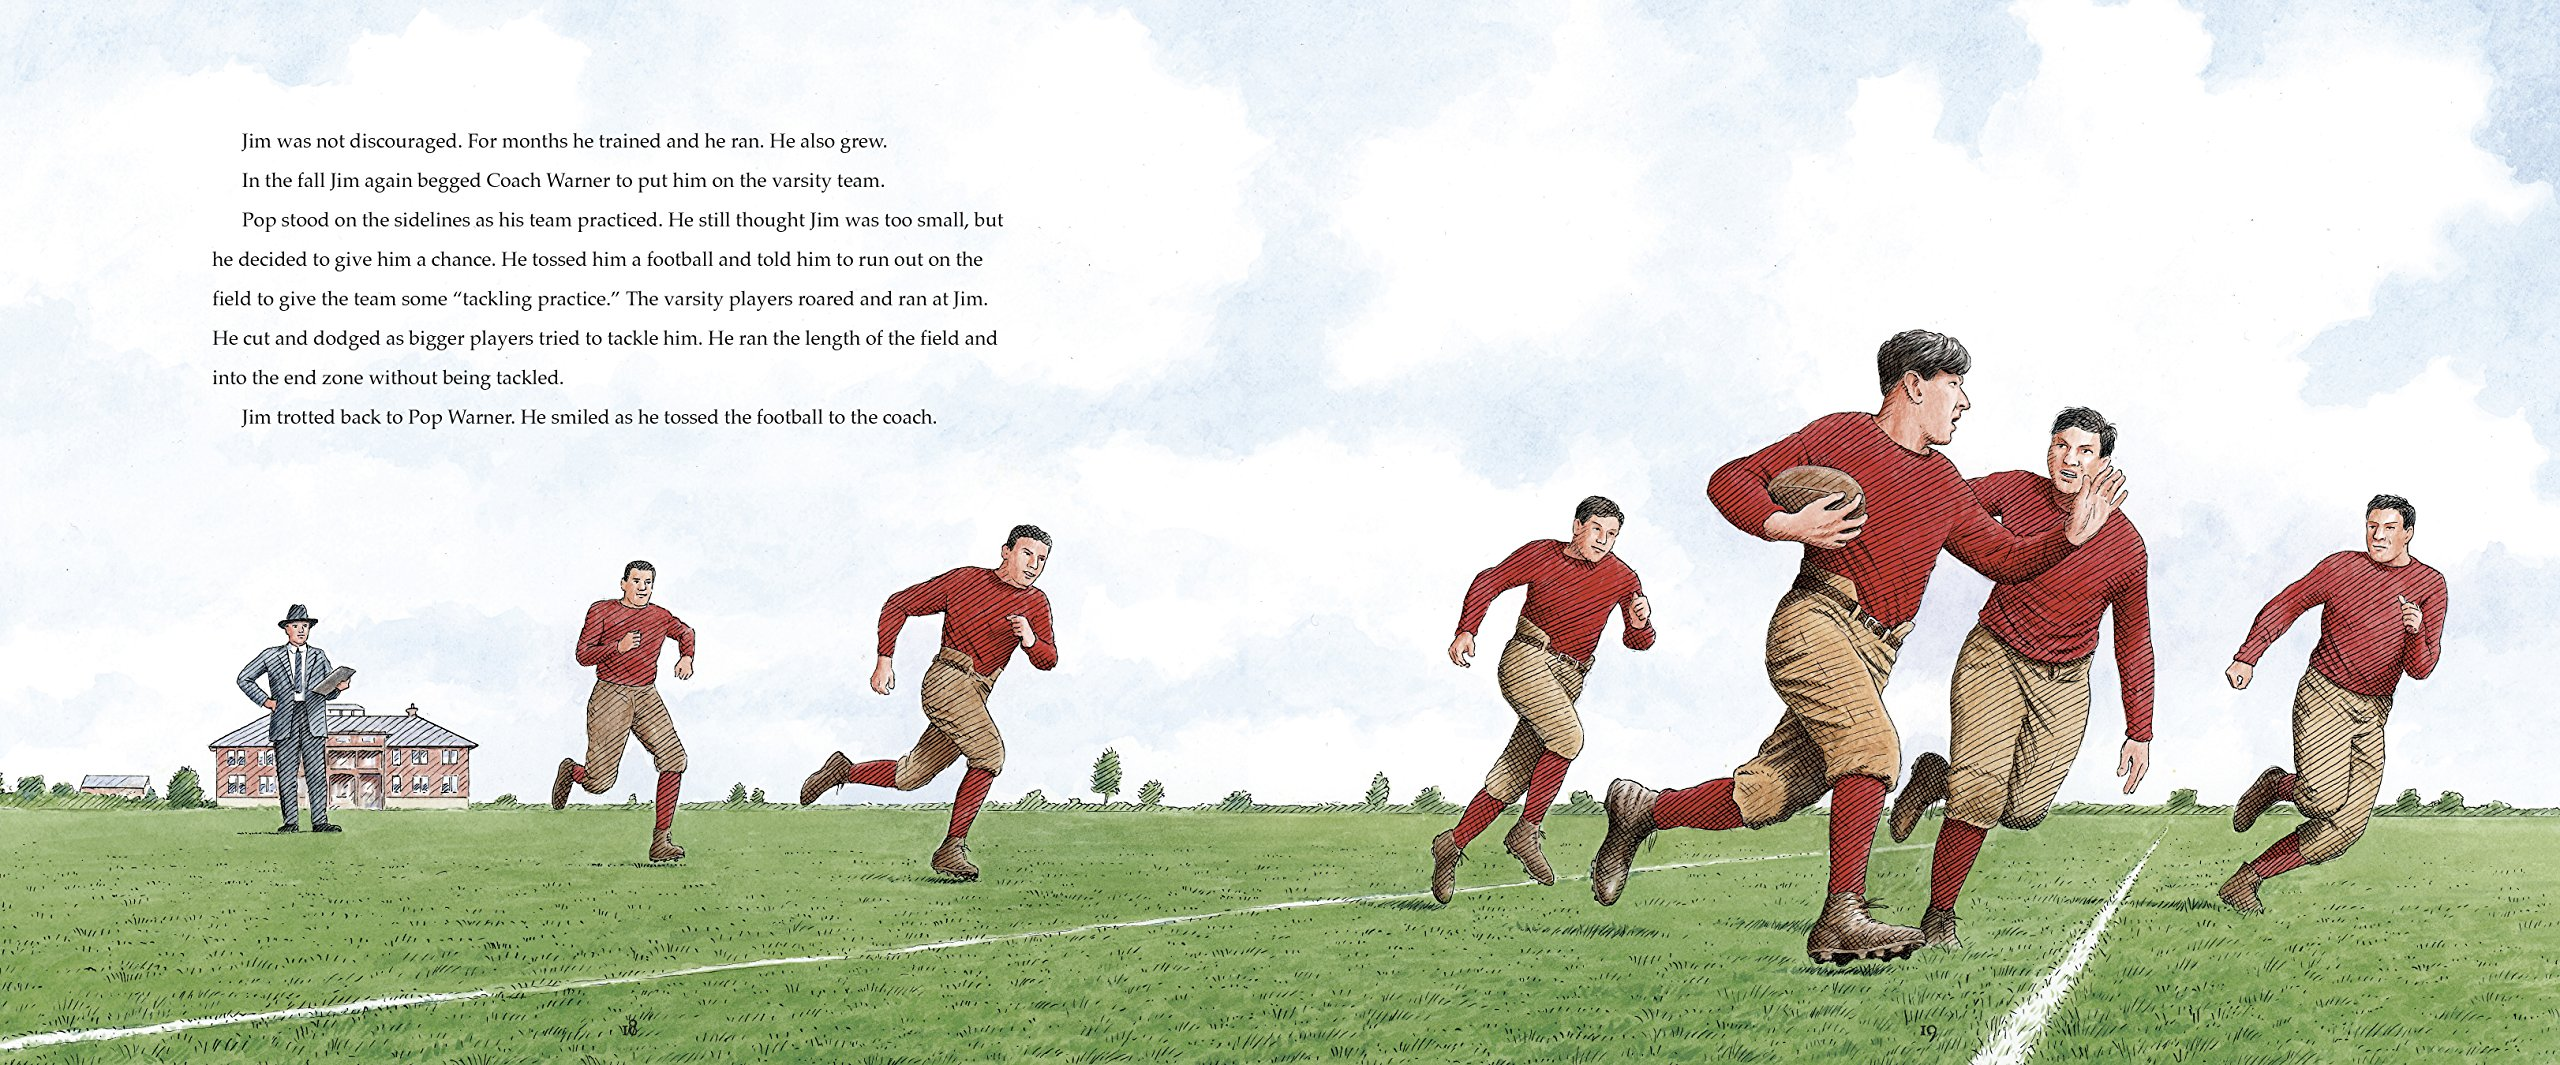 Unstoppable: How Jim Thorpe and the Carlisle Indian School Football Team Defeated Army (Encounter: Narrative Nonfiction Picture Books)